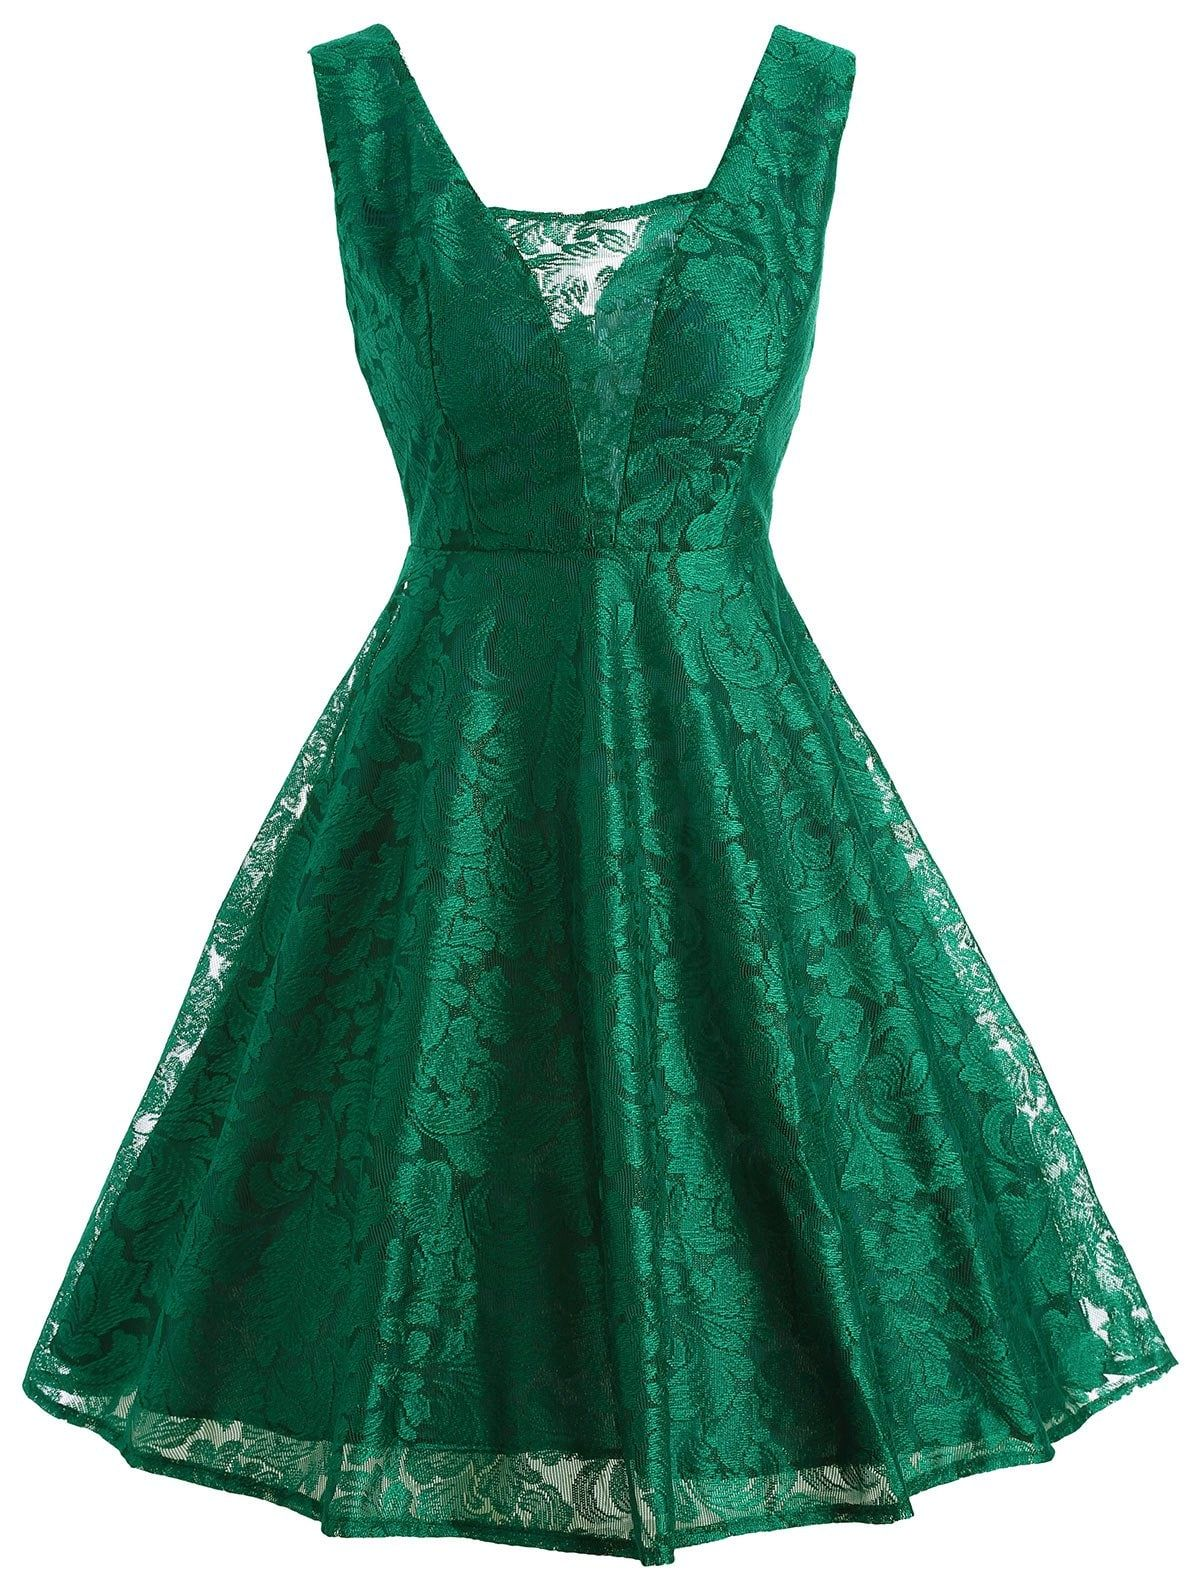 Green dress ideas  Retro Sleeveless Lace Fit and Flare Dress  ideas for party